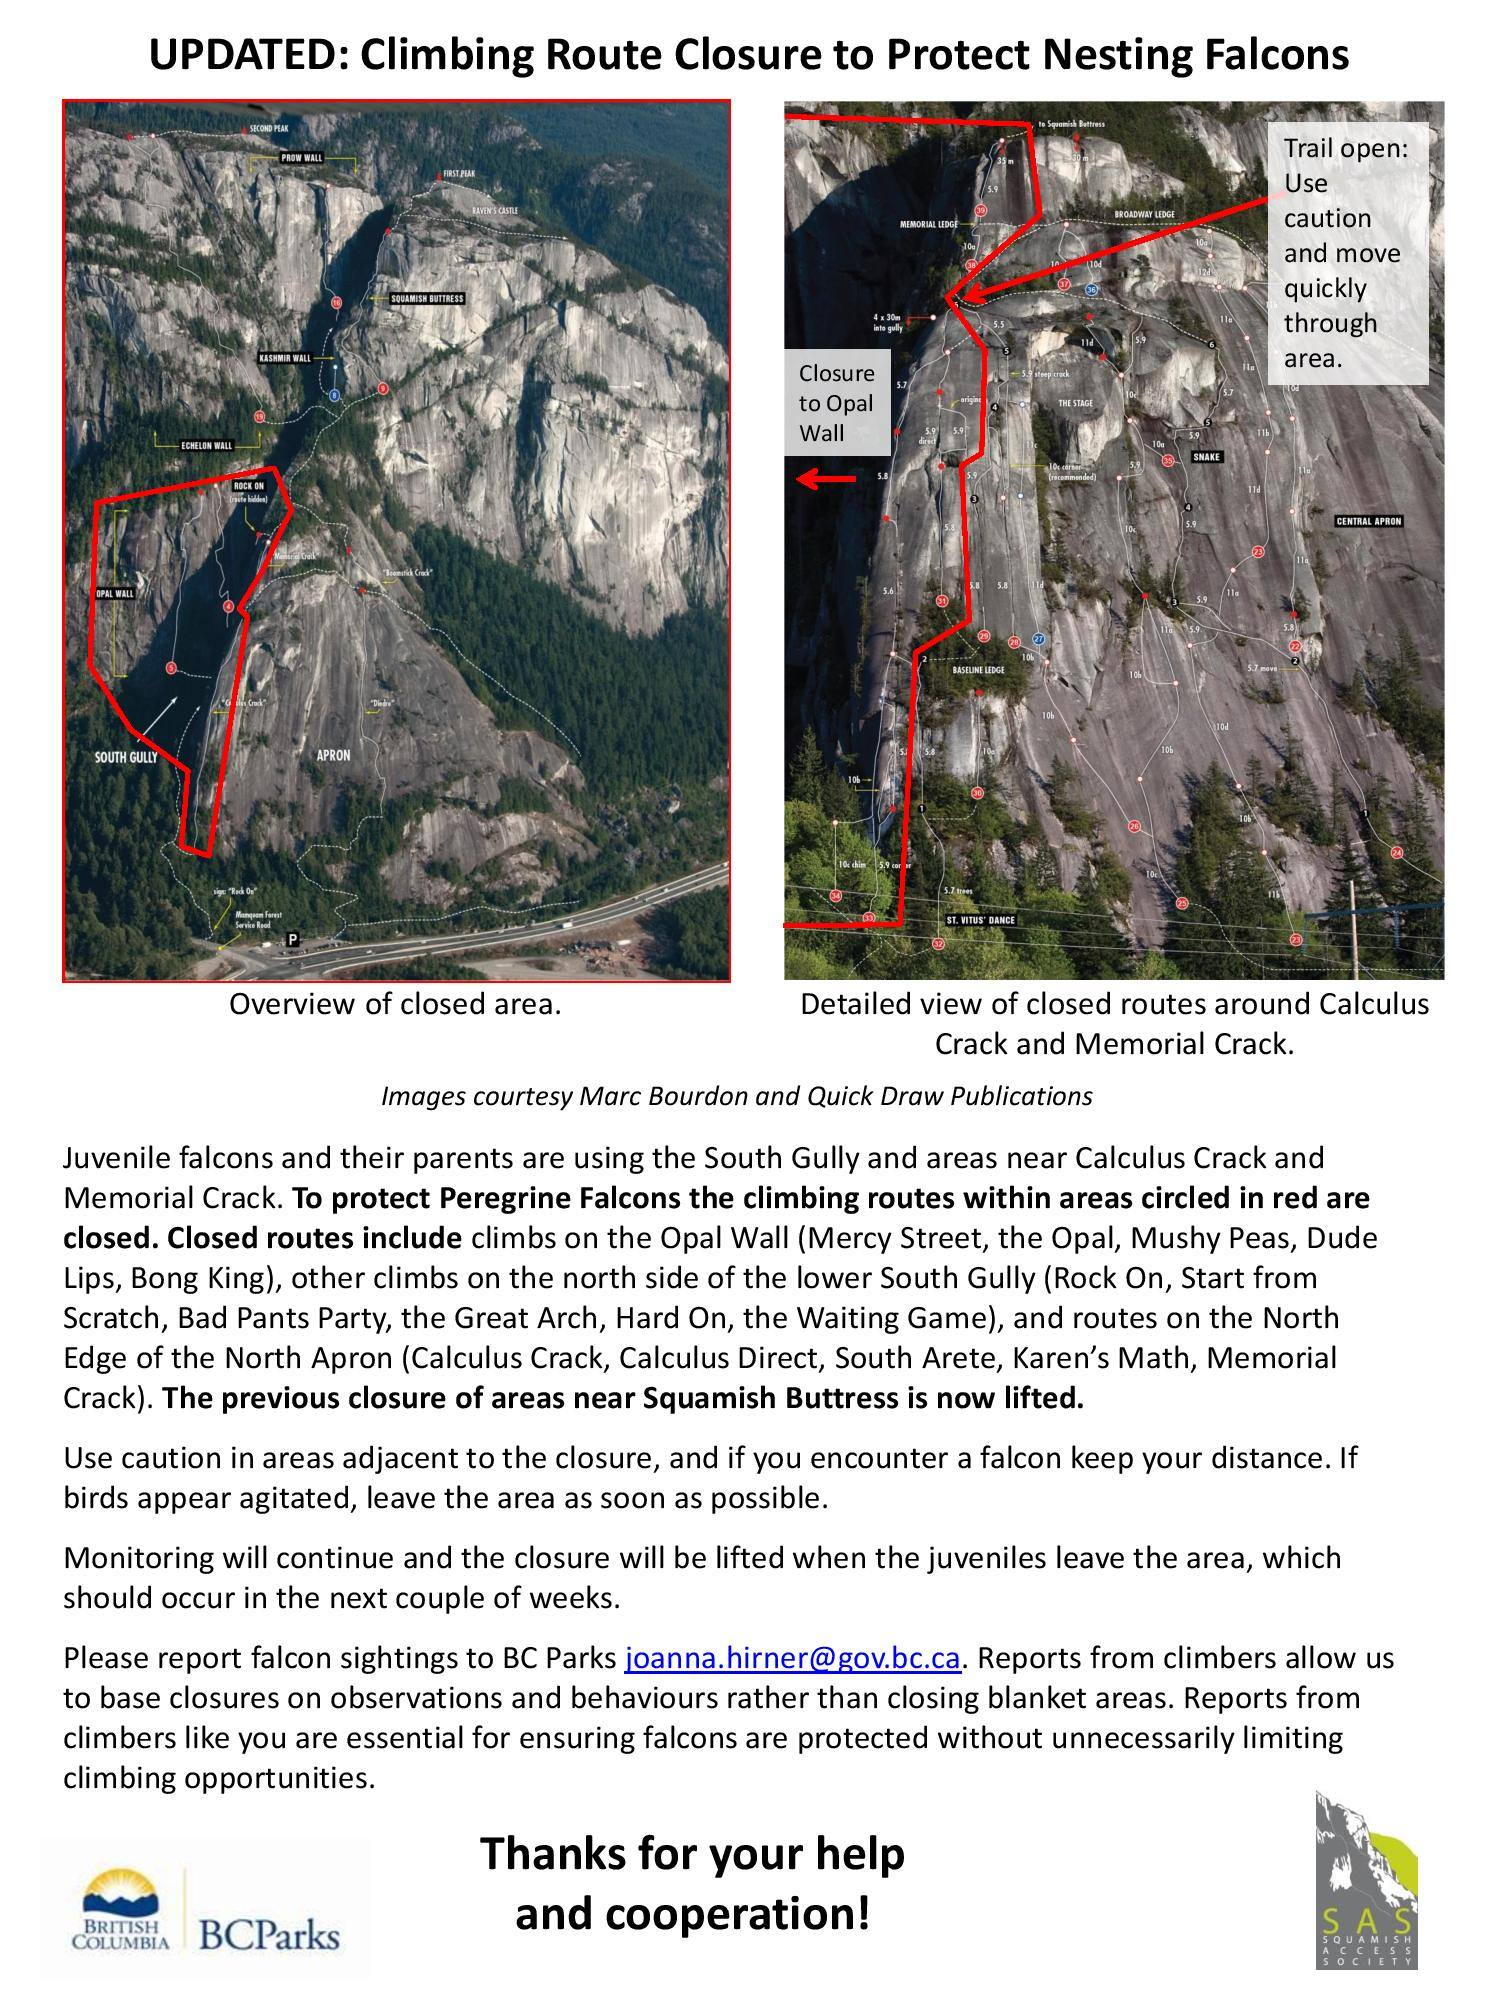 Bc Parks And Volunteer Climbers Are To Continue Falcon Monitoring And Potentially Lift This This Closure In The Next Couple Weeks As The Fledglings Appear